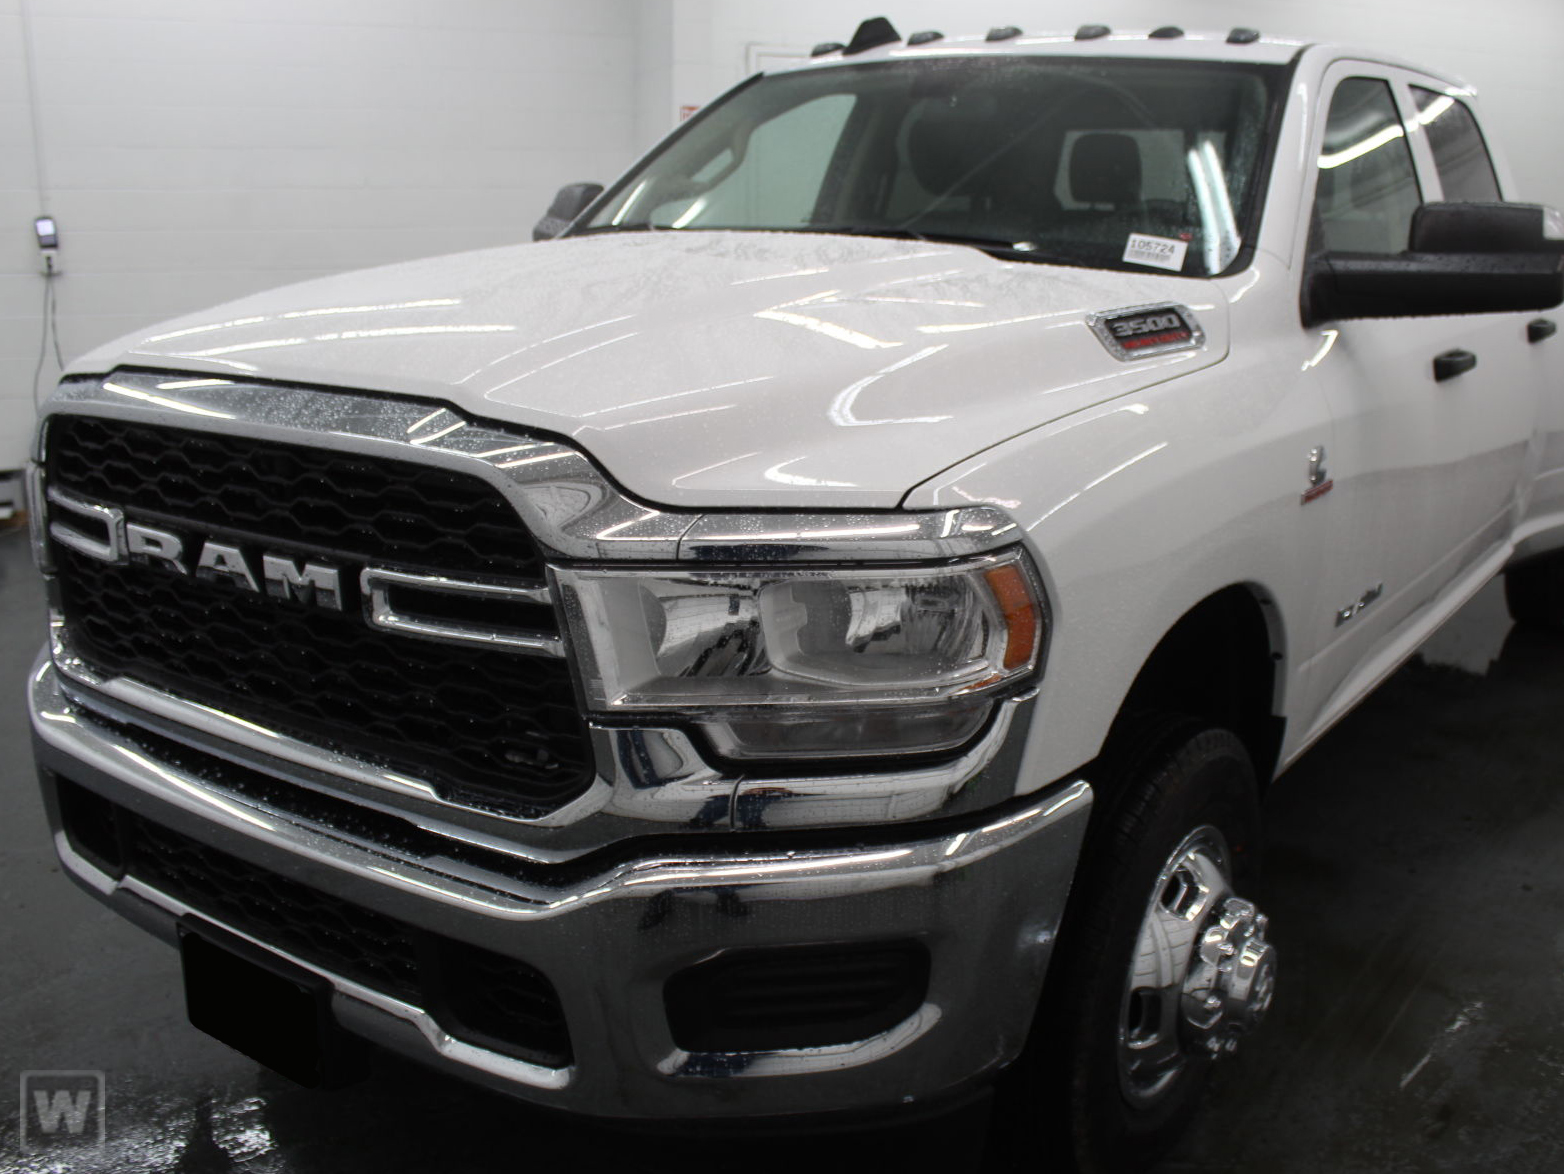 2020 Ram 3500 Crew Cab DRW 4x4, Pickup #154677 - photo 1